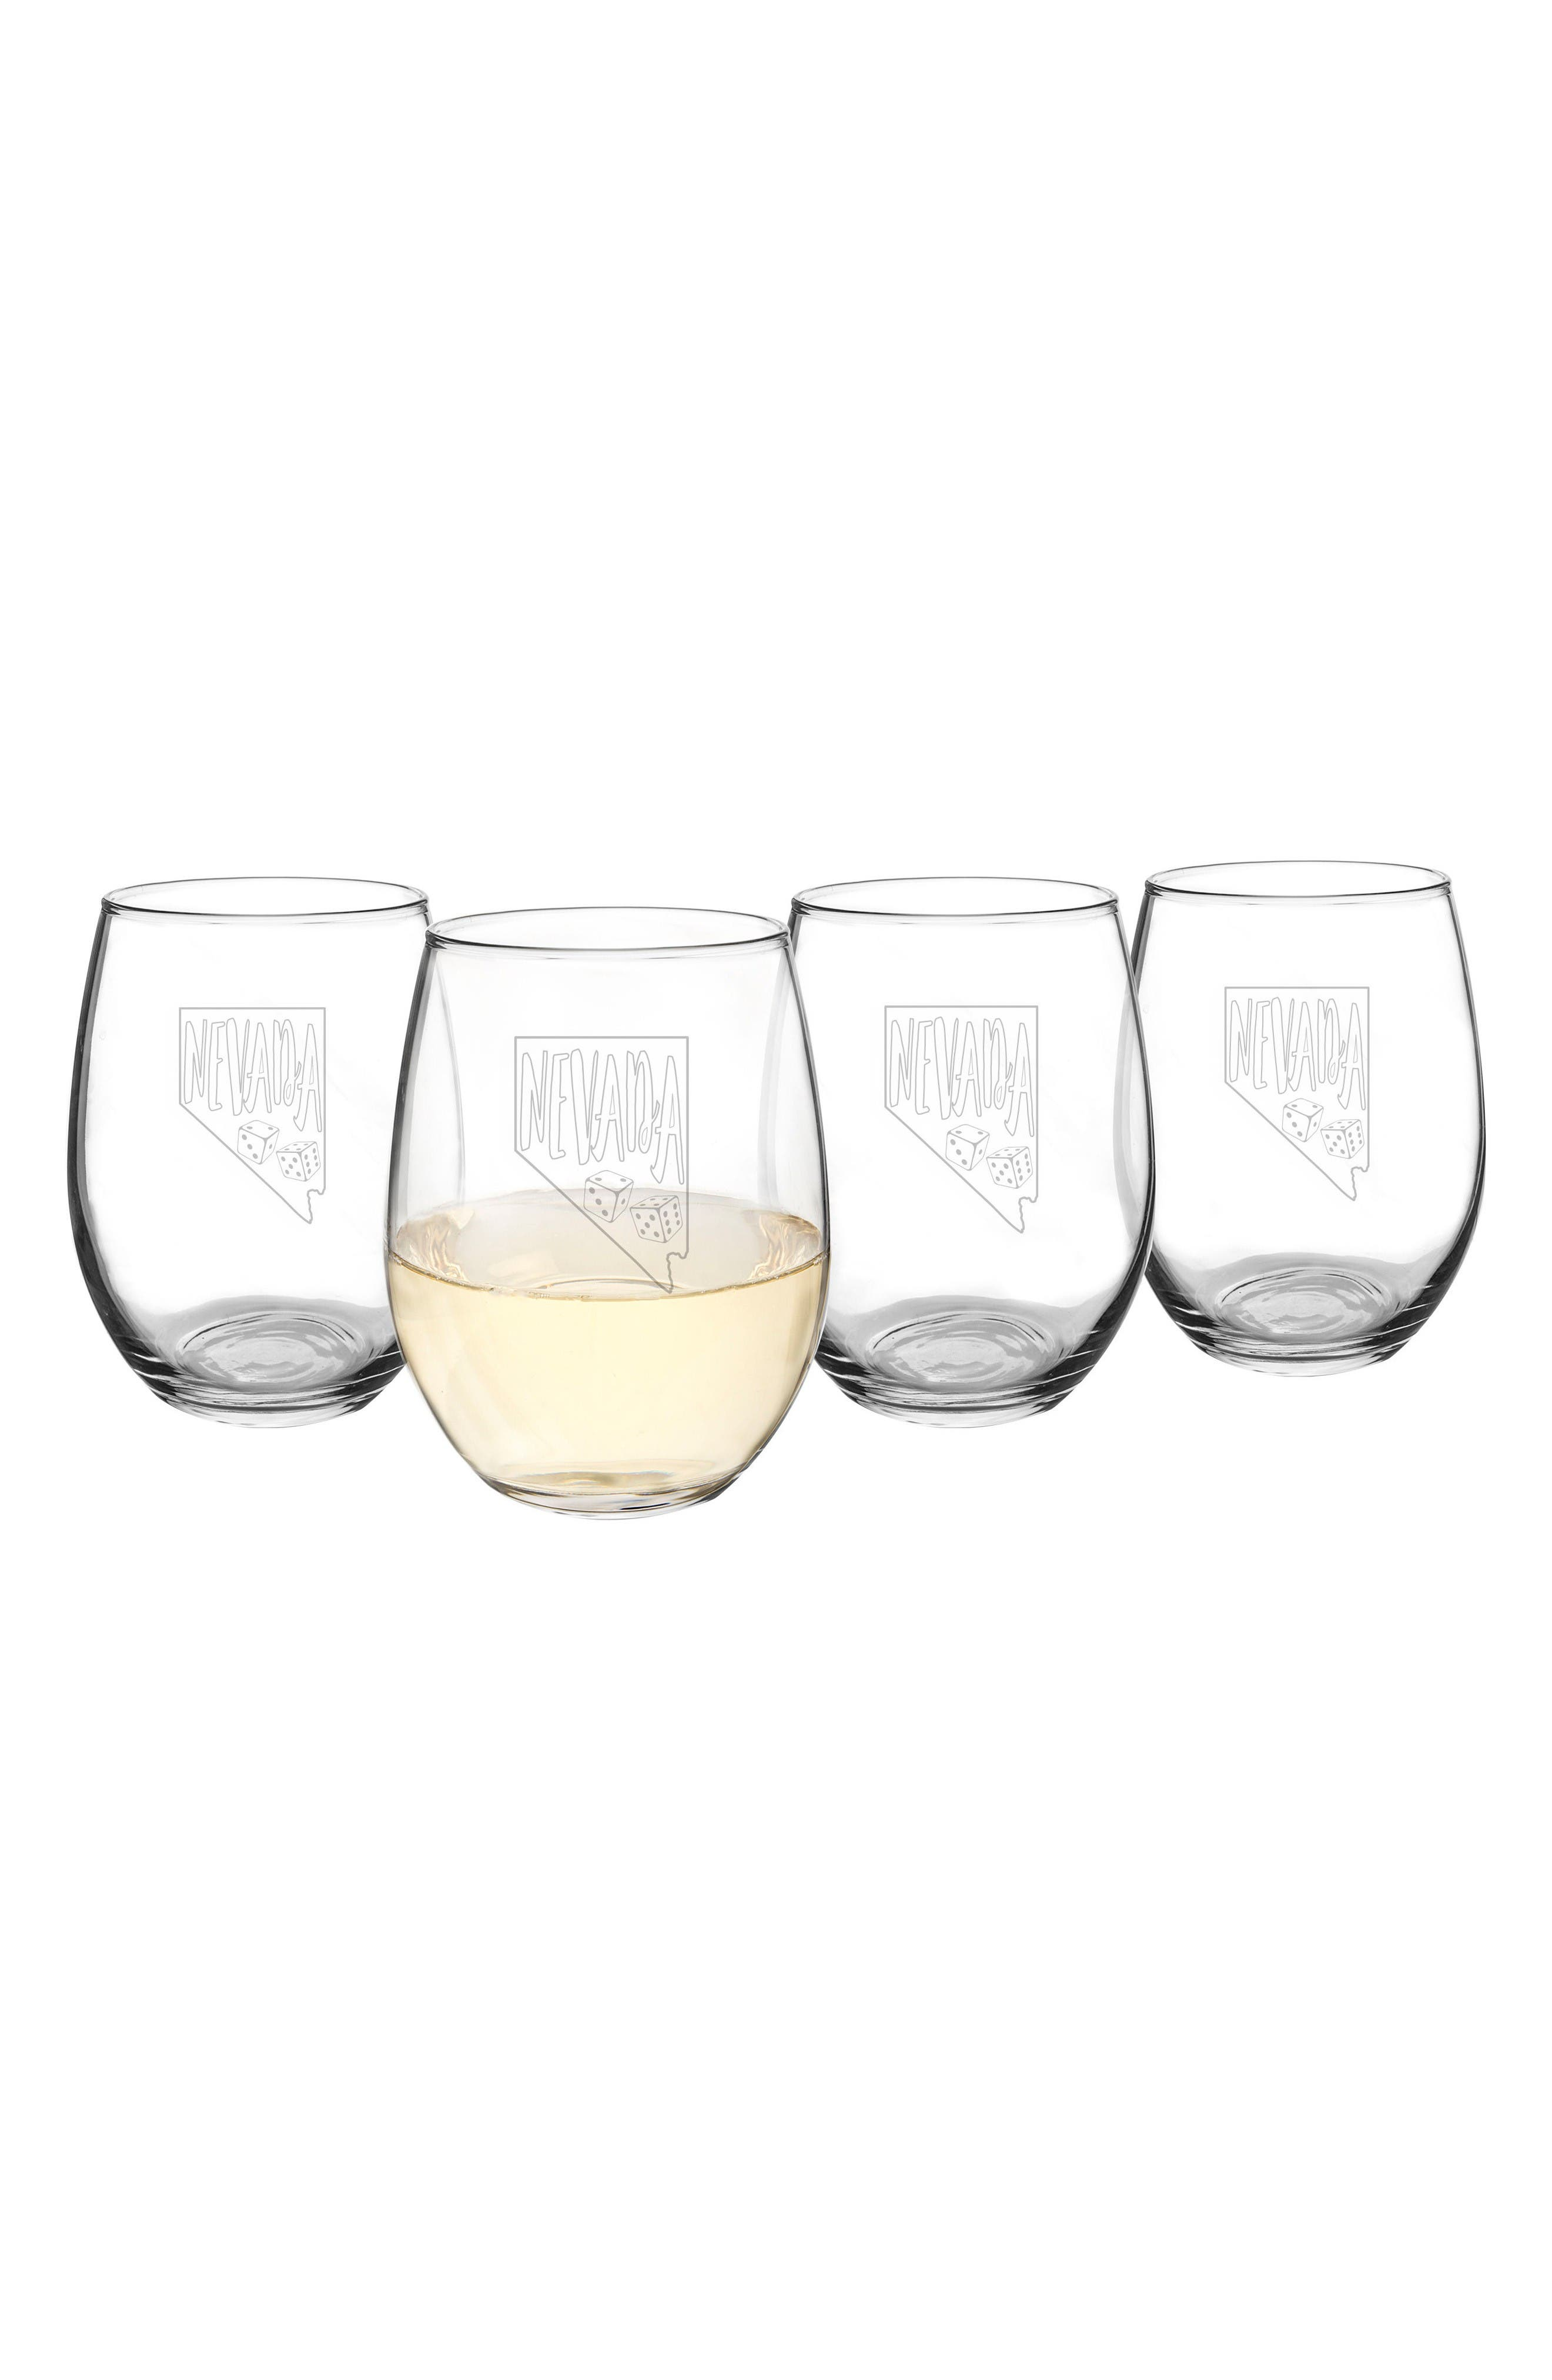 Alternate Image 1 Selected - Cathy's Concepts State Set of 4 Stemless Wine Glasses